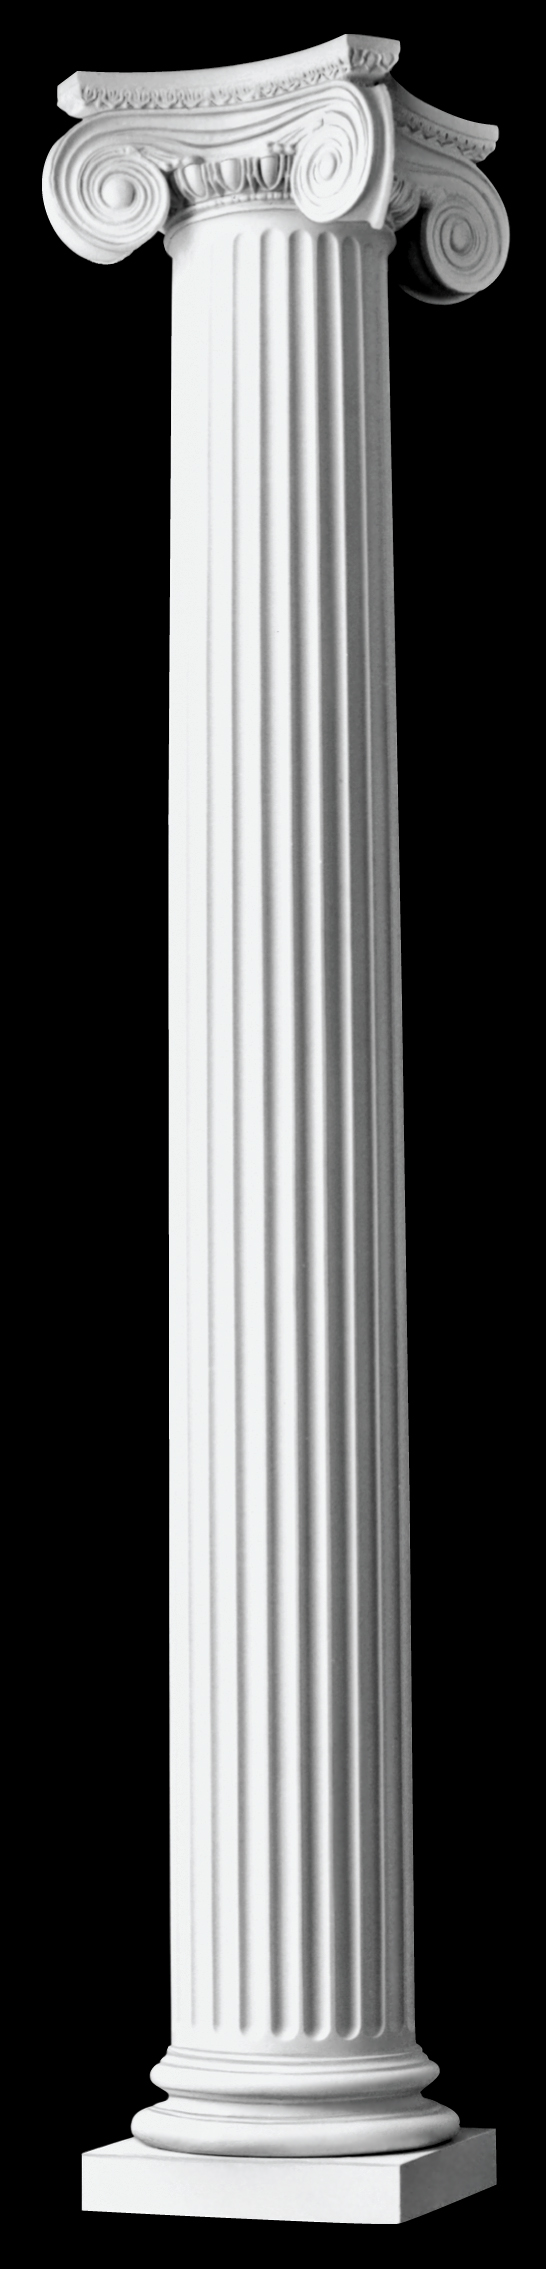 fluted architectural wood columns greek angular ionic design